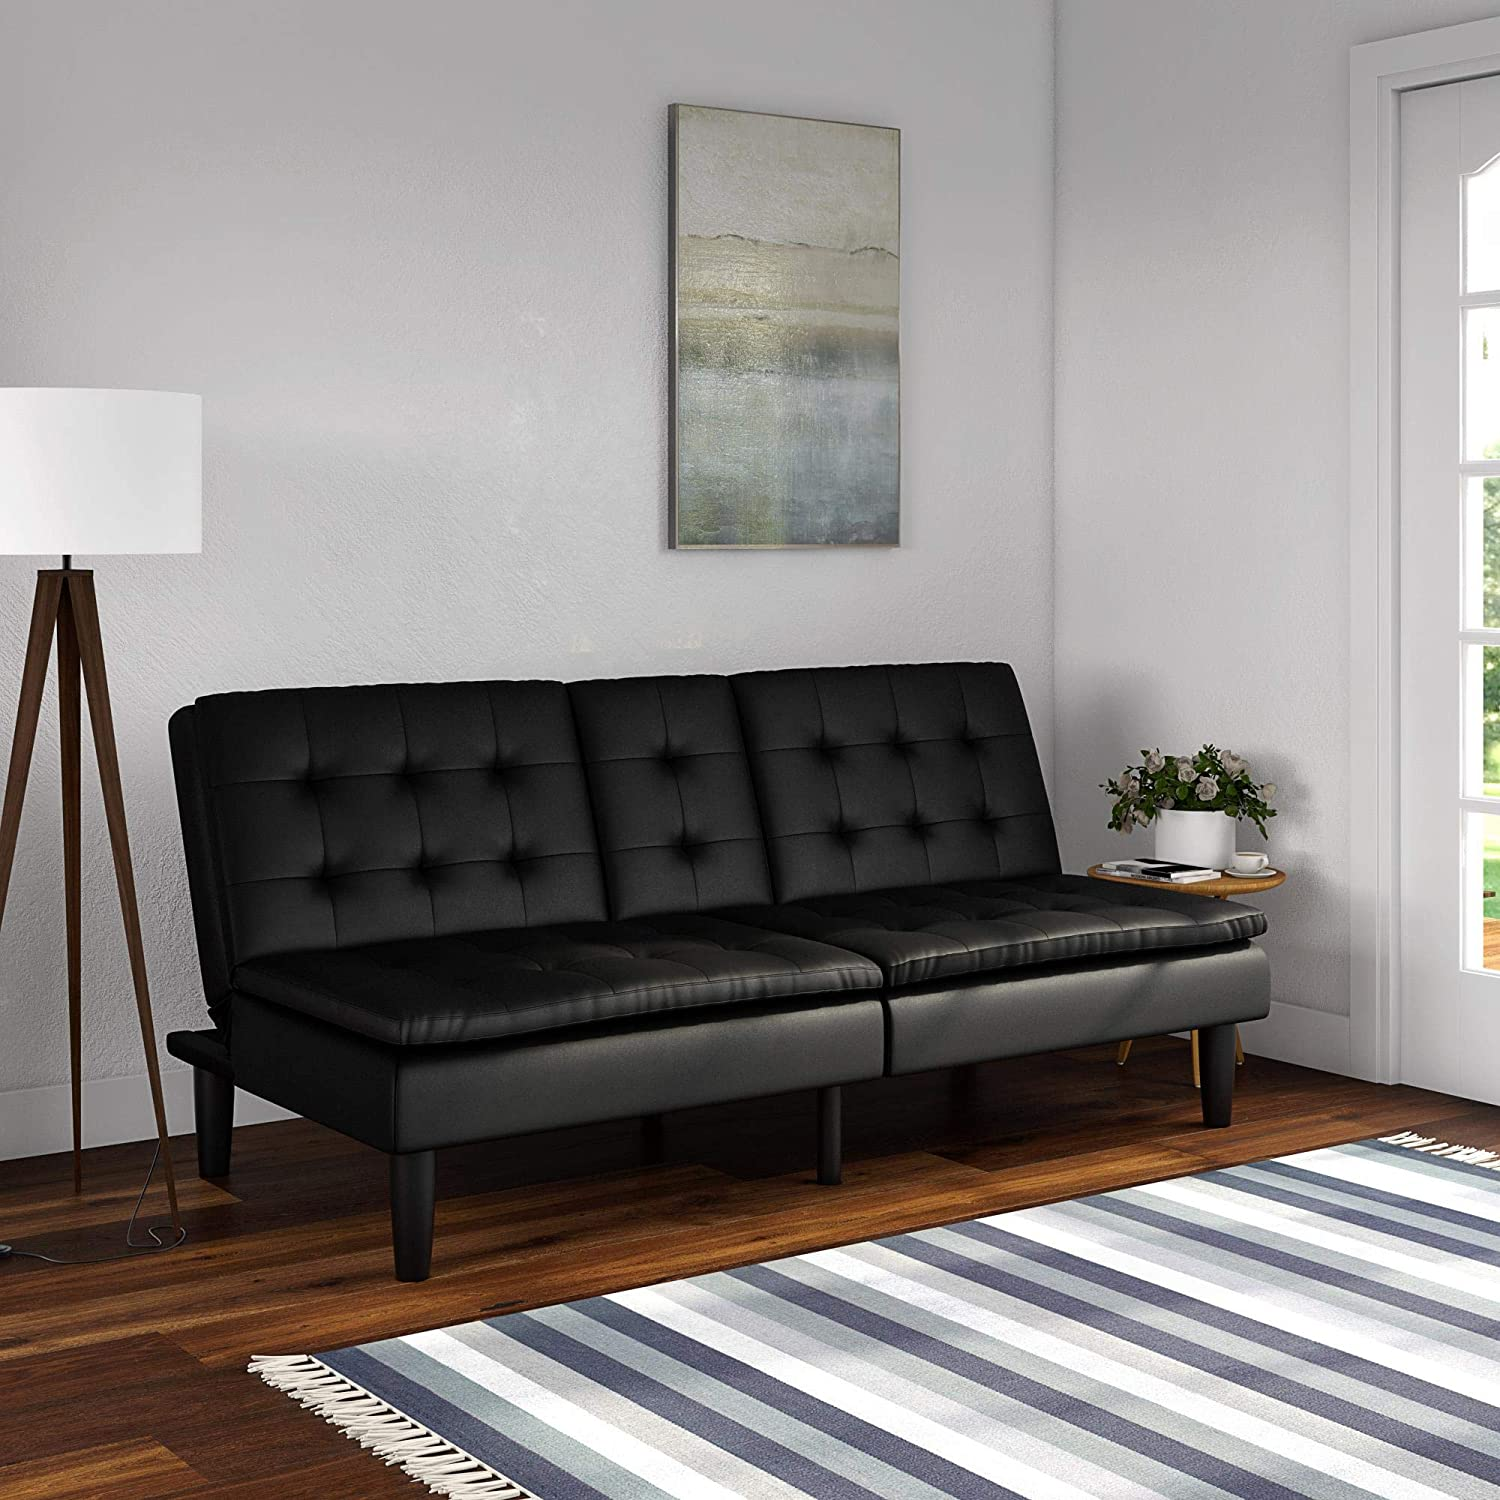 Black Faux Leather Mainstay Memory Foam Faux Leather PillowTop Futon with Cupholders and Frame